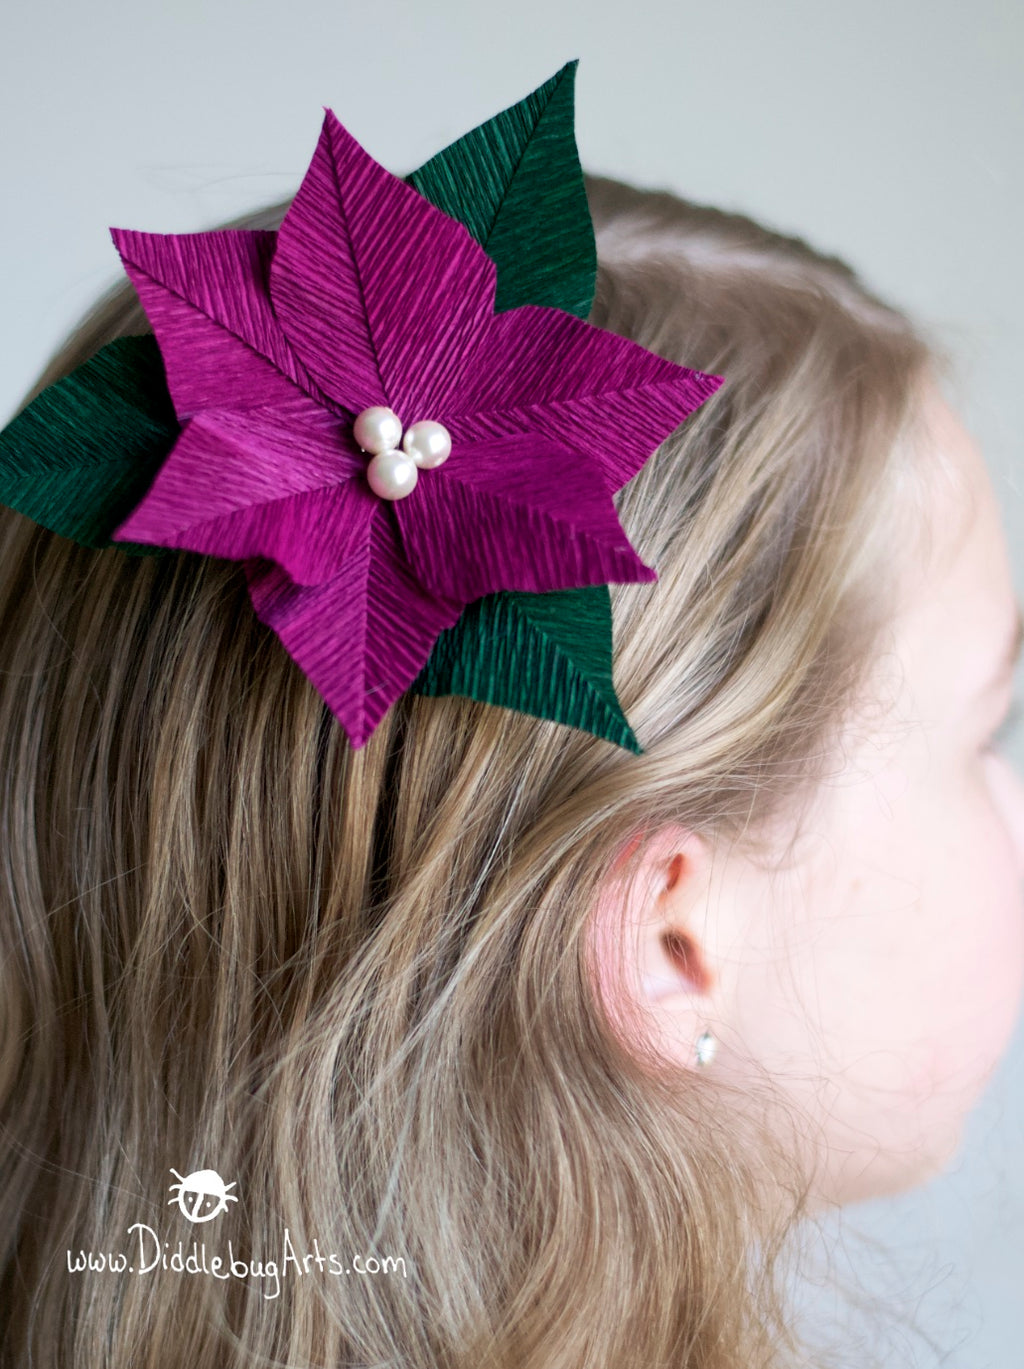 girl with a dark pink crepe paper poinsettia pin in her hair